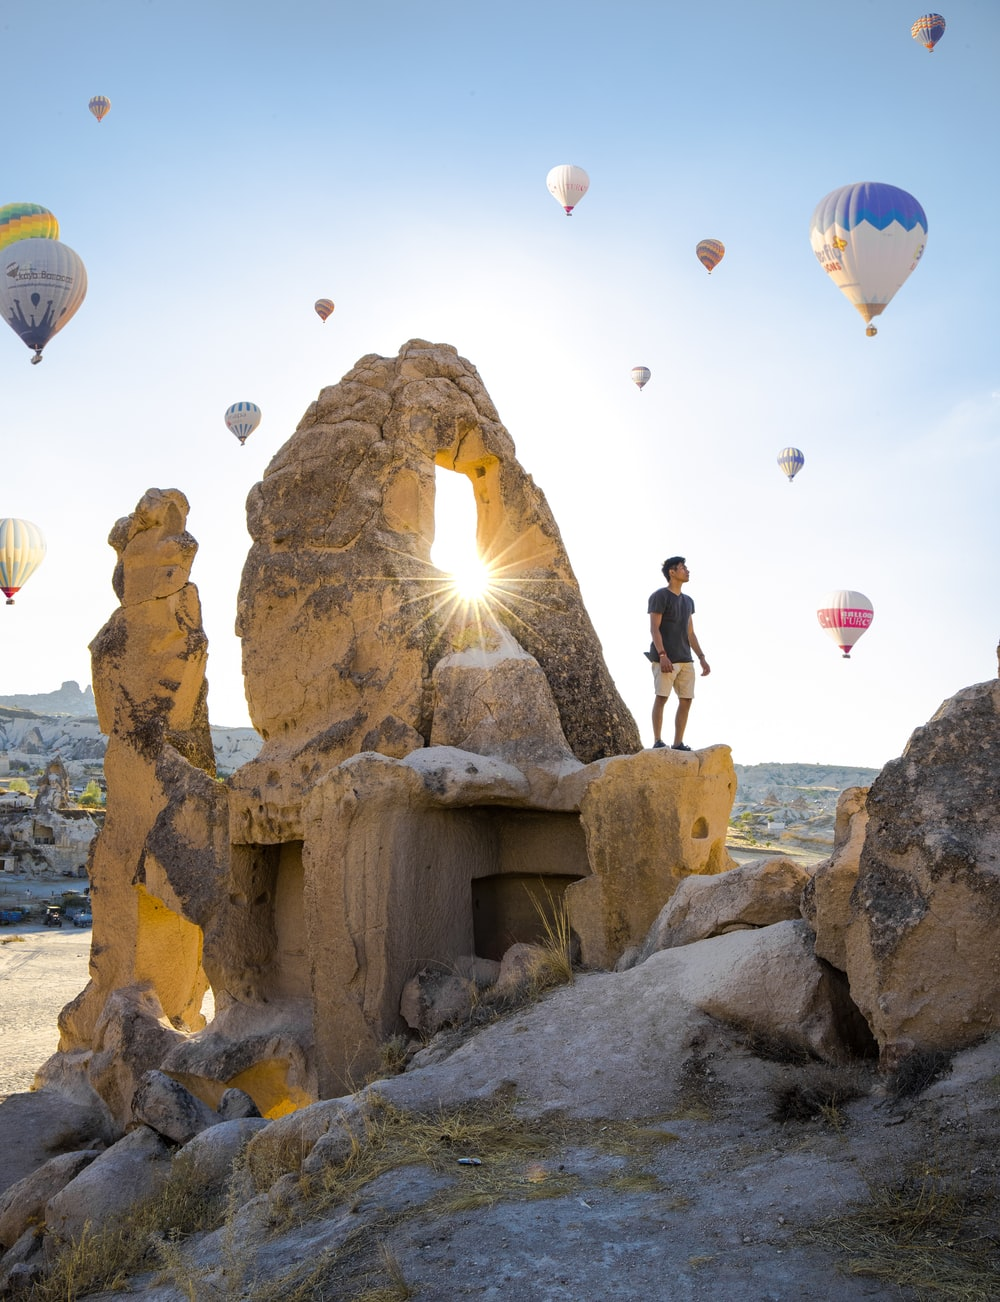 man standing on rocky hill and assorted-colored hit air balloons on skies